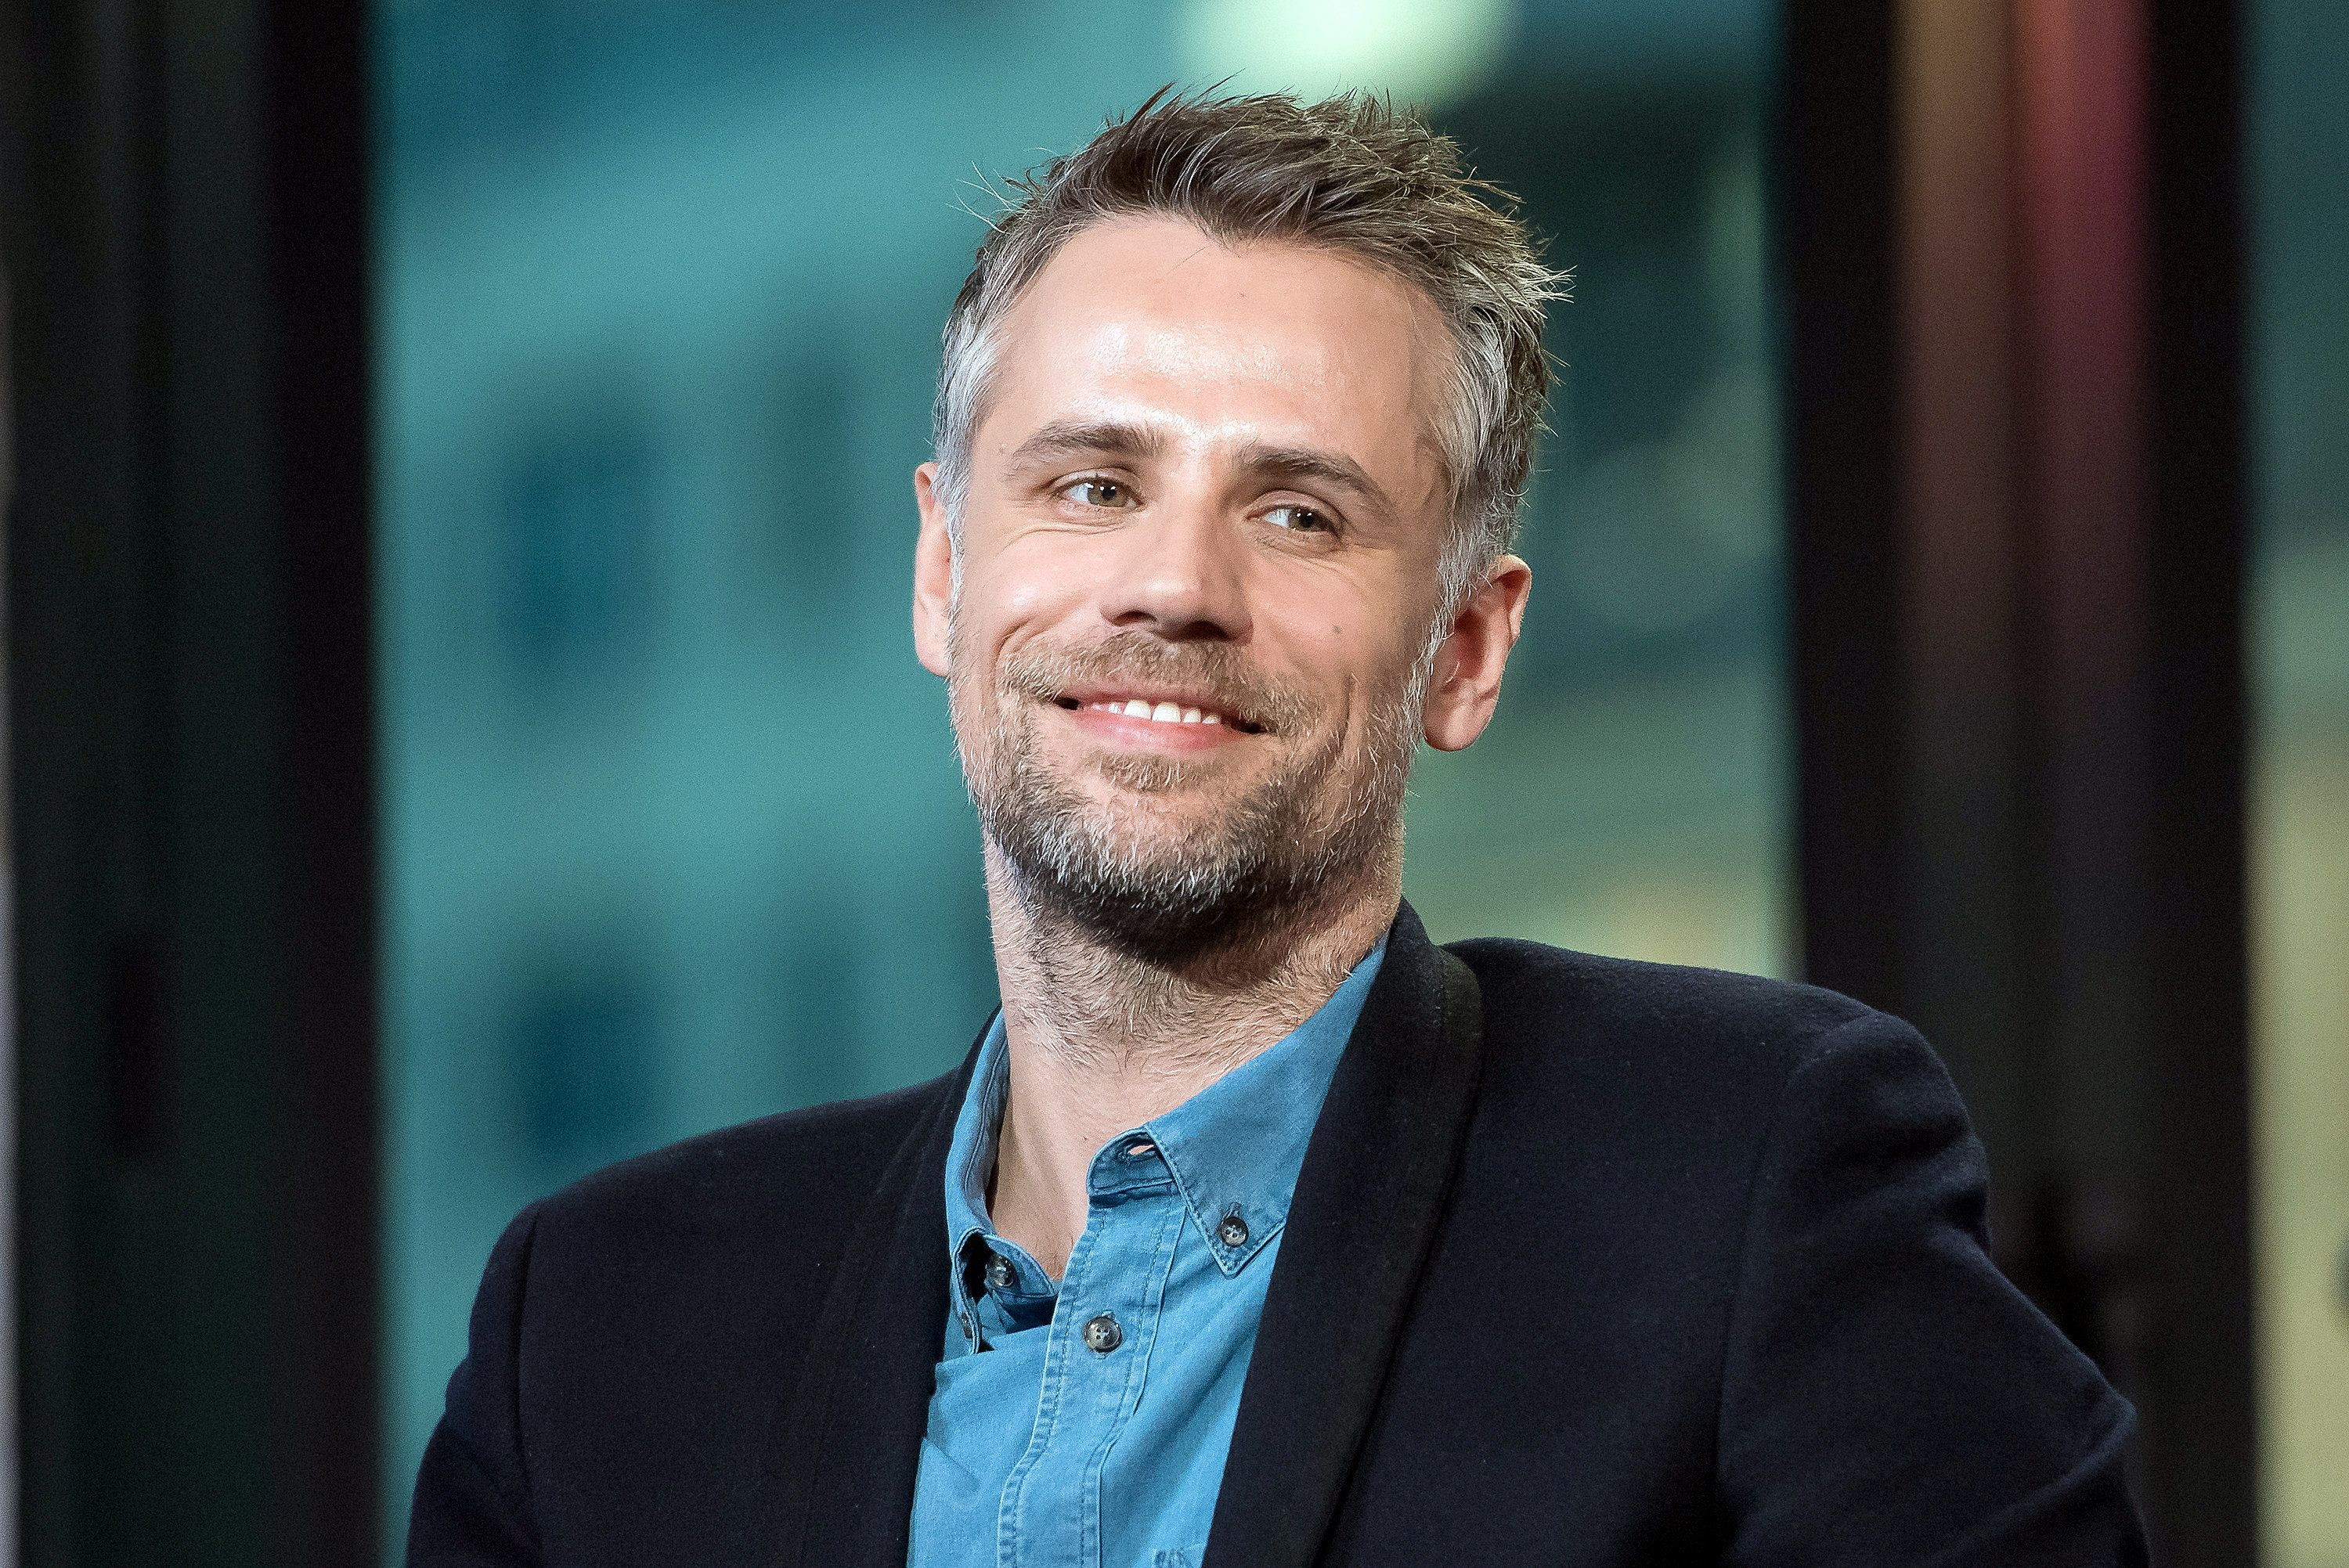 Richard Bacon 'Relieved' To Be Diagnosed With ADHD At Age Of 42